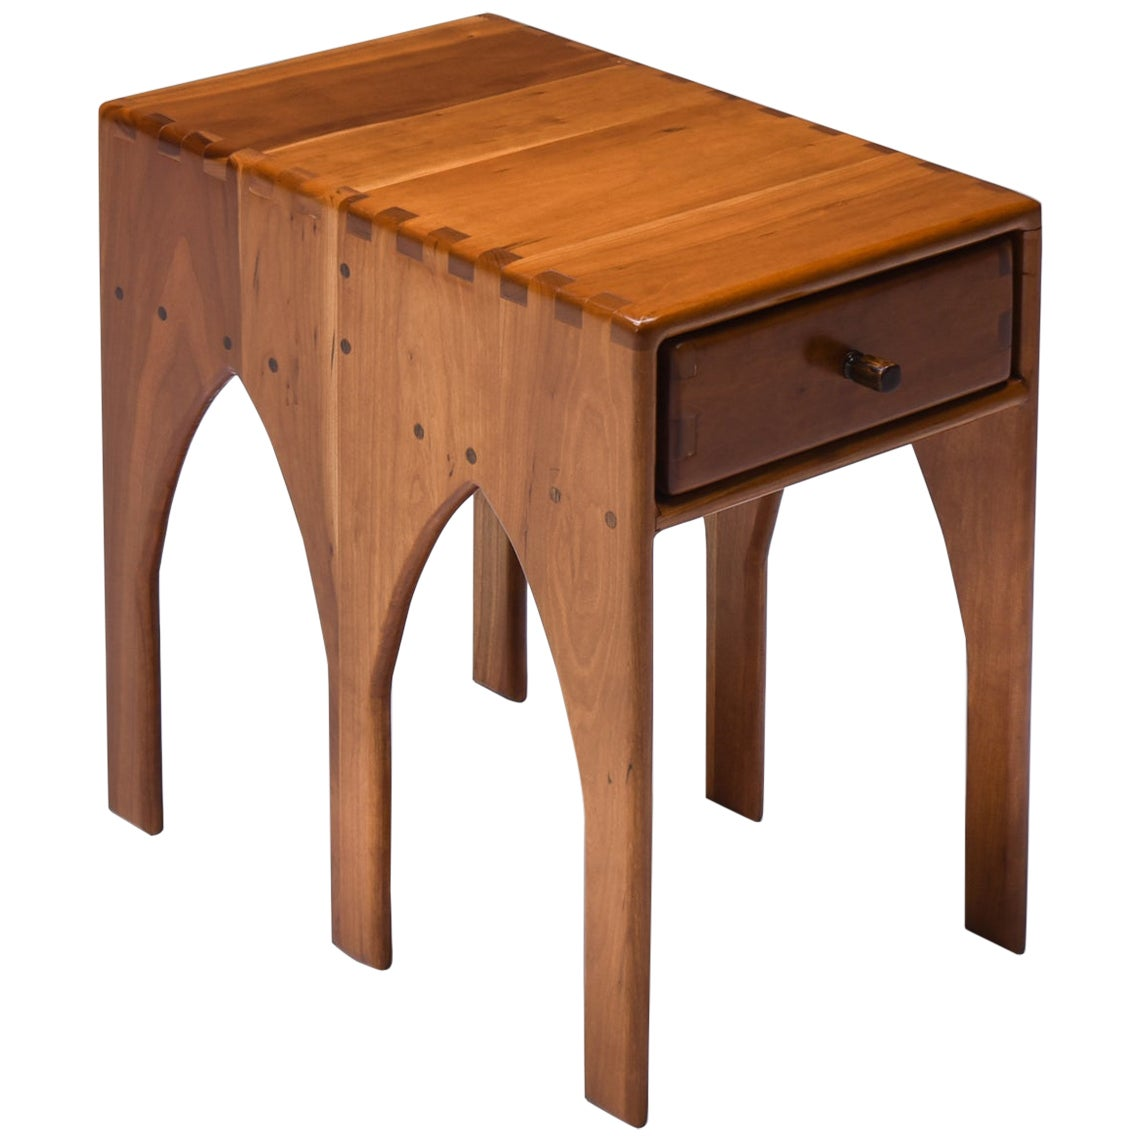 Studio Furniture American Craft Side Table with Drawer on Each Side